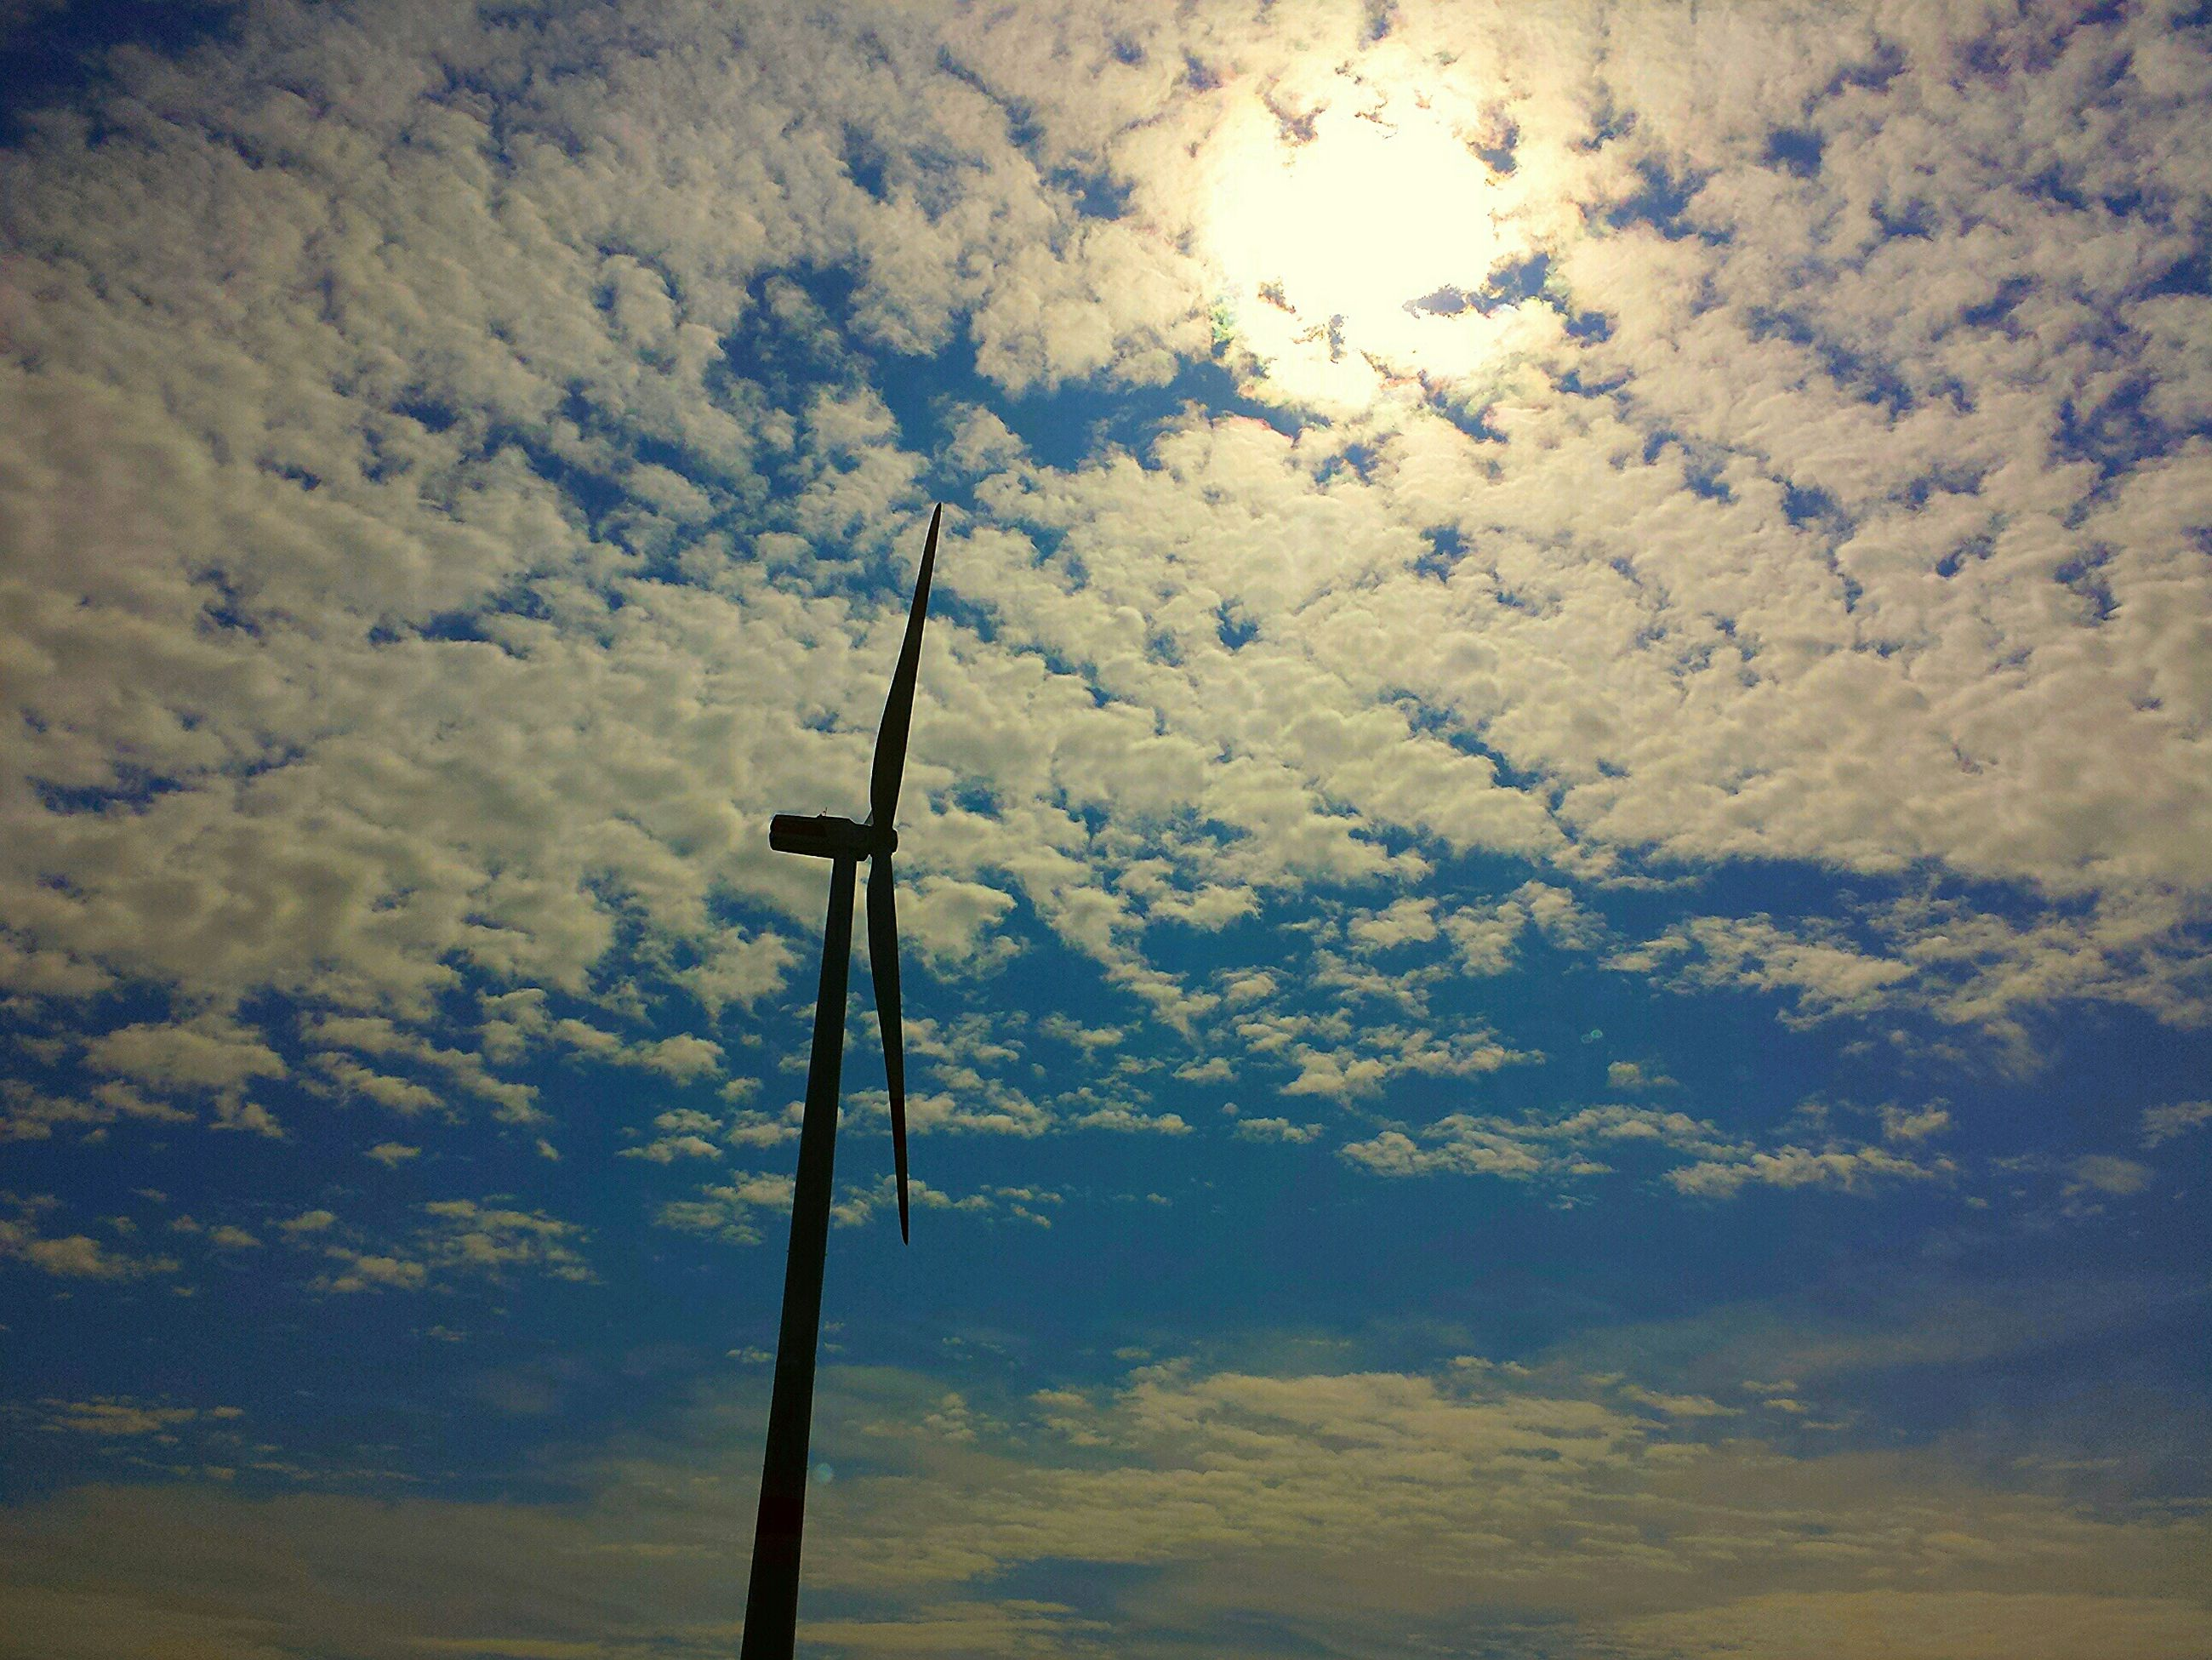 low angle view, sky, fuel and power generation, cloud - sky, wind power, tranquility, wind turbine, environmental conservation, nature, lighting equipment, cross, alternative energy, renewable energy, windmill, pole, street light, tranquil scene, technology, no people, cloud